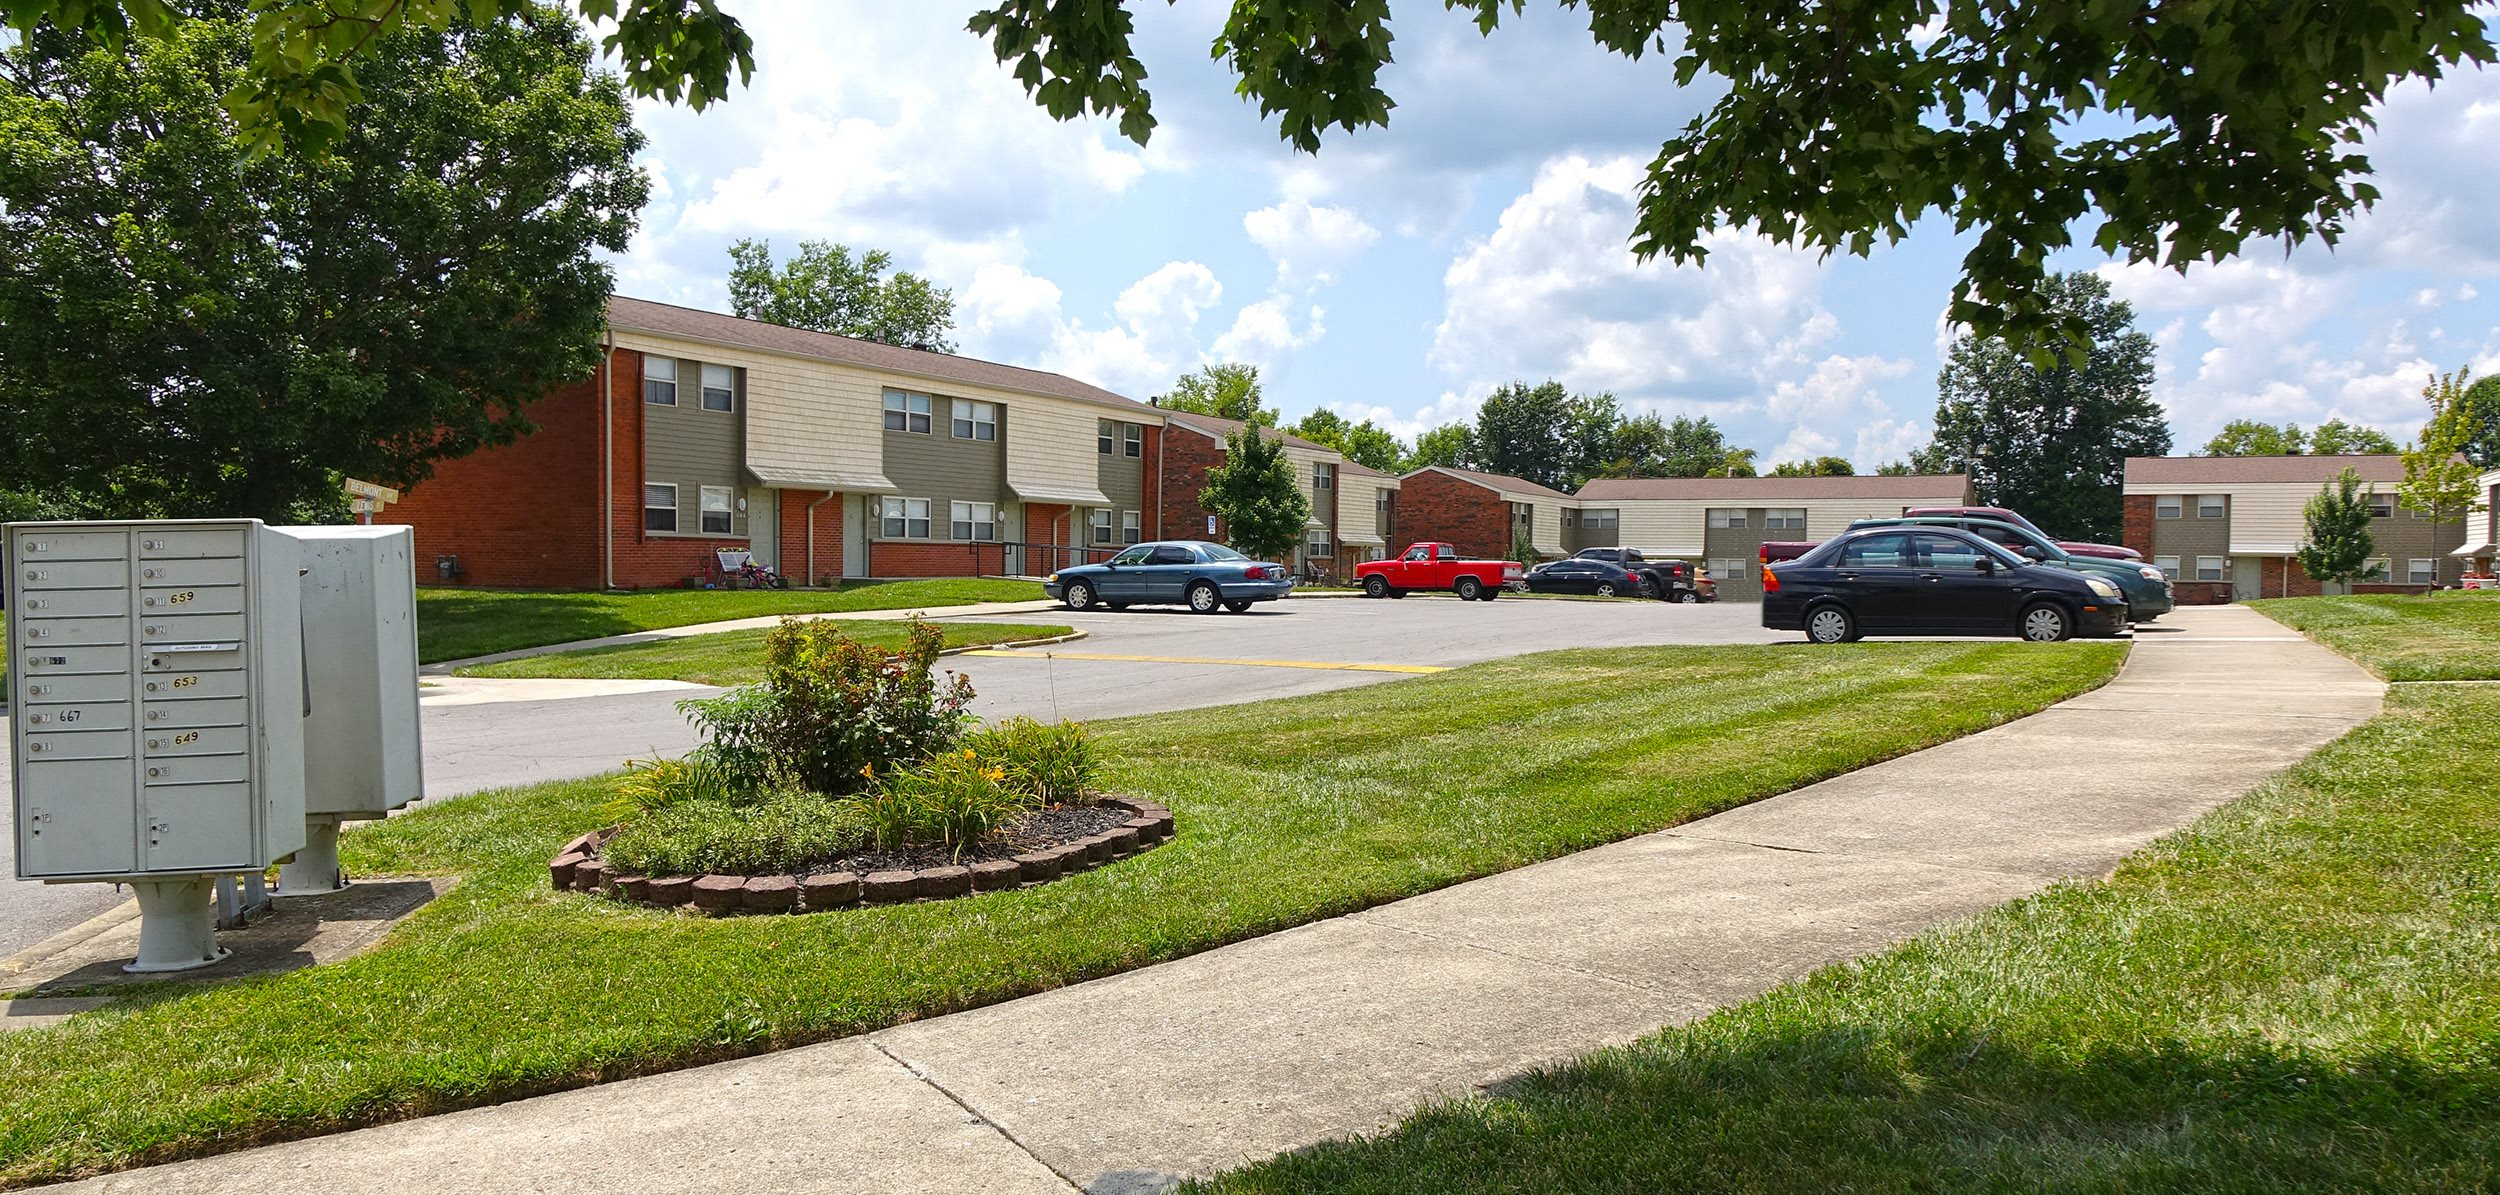 Belmont Court Apartments | Apartments in Harrodsburg, KY